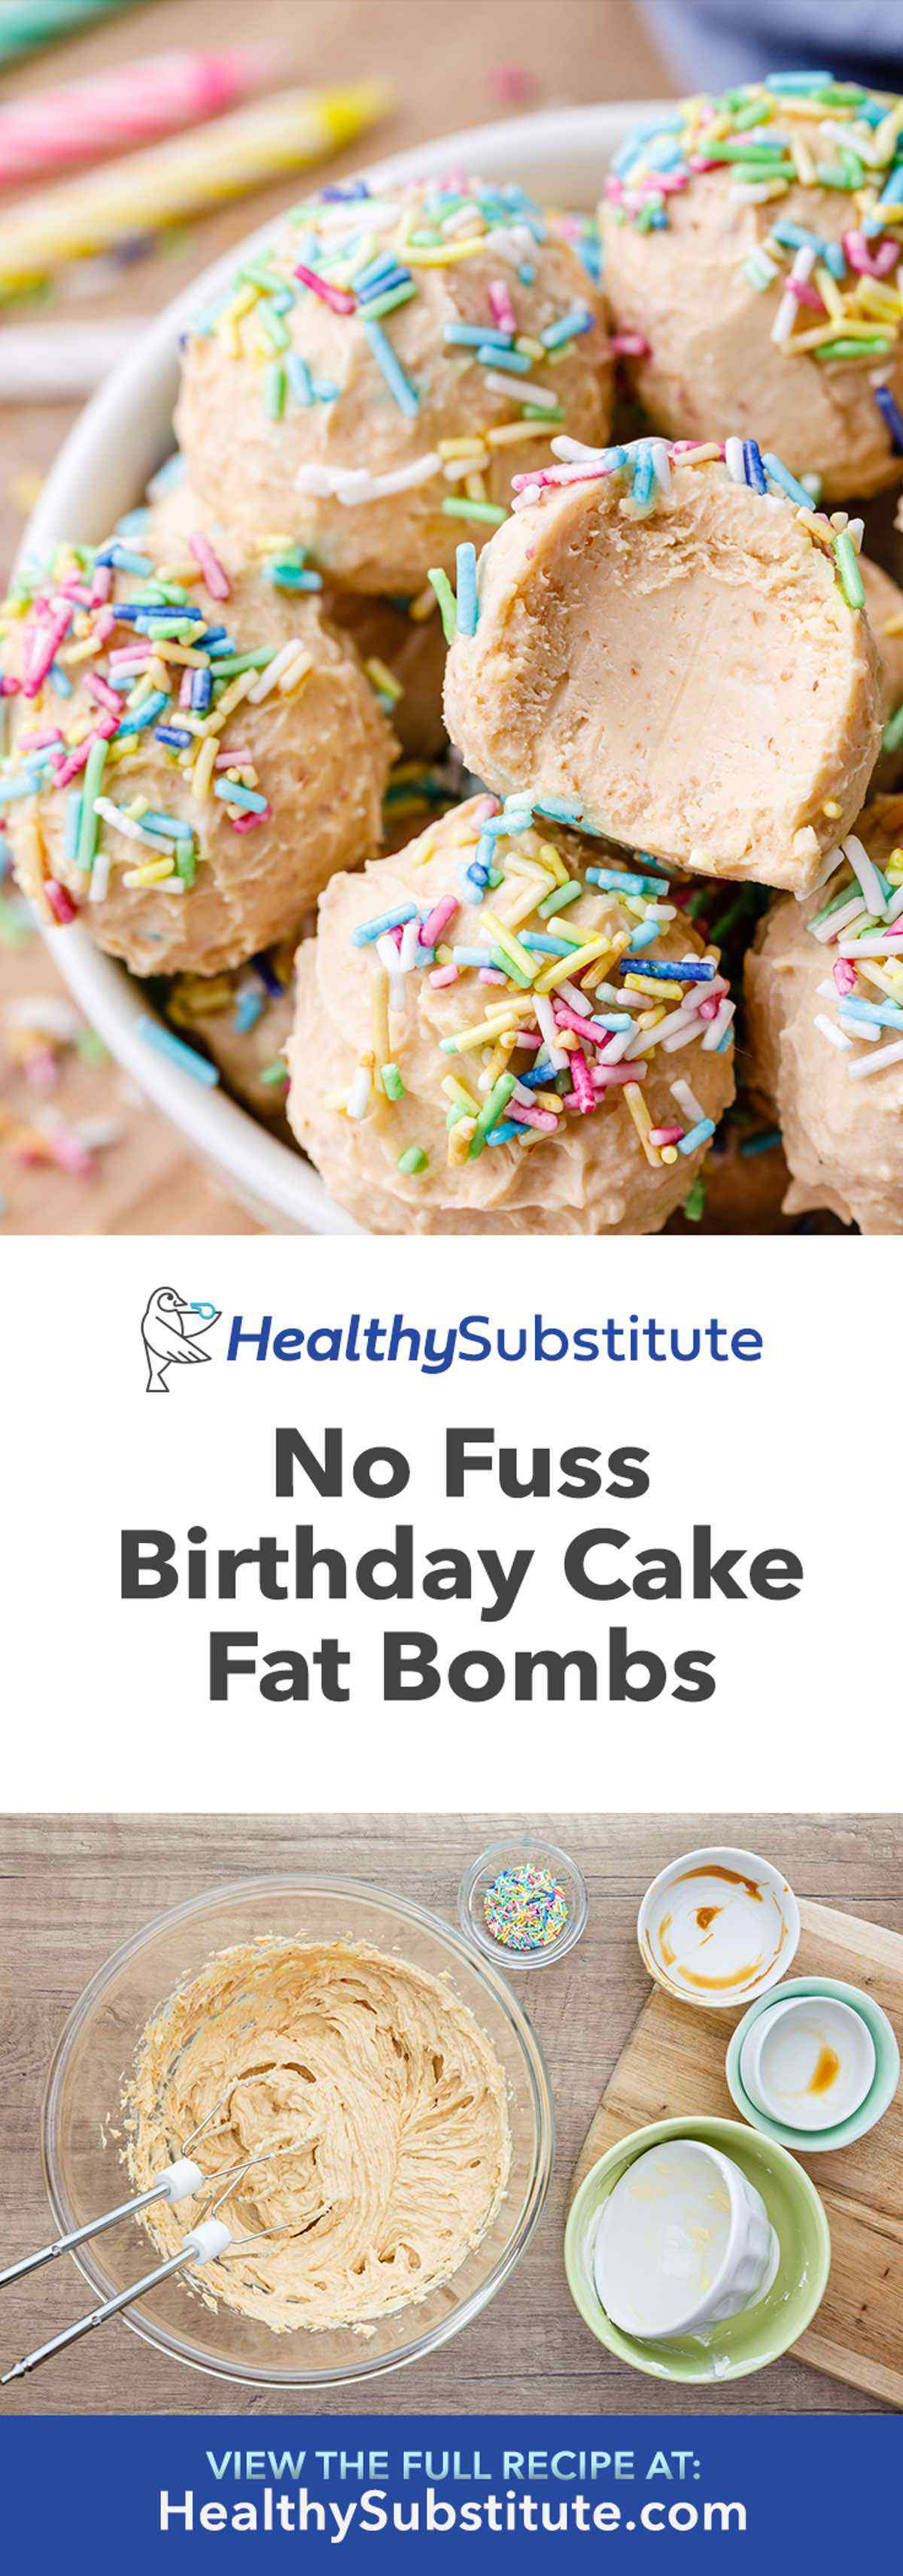 Birthday Cake Fat Bombs